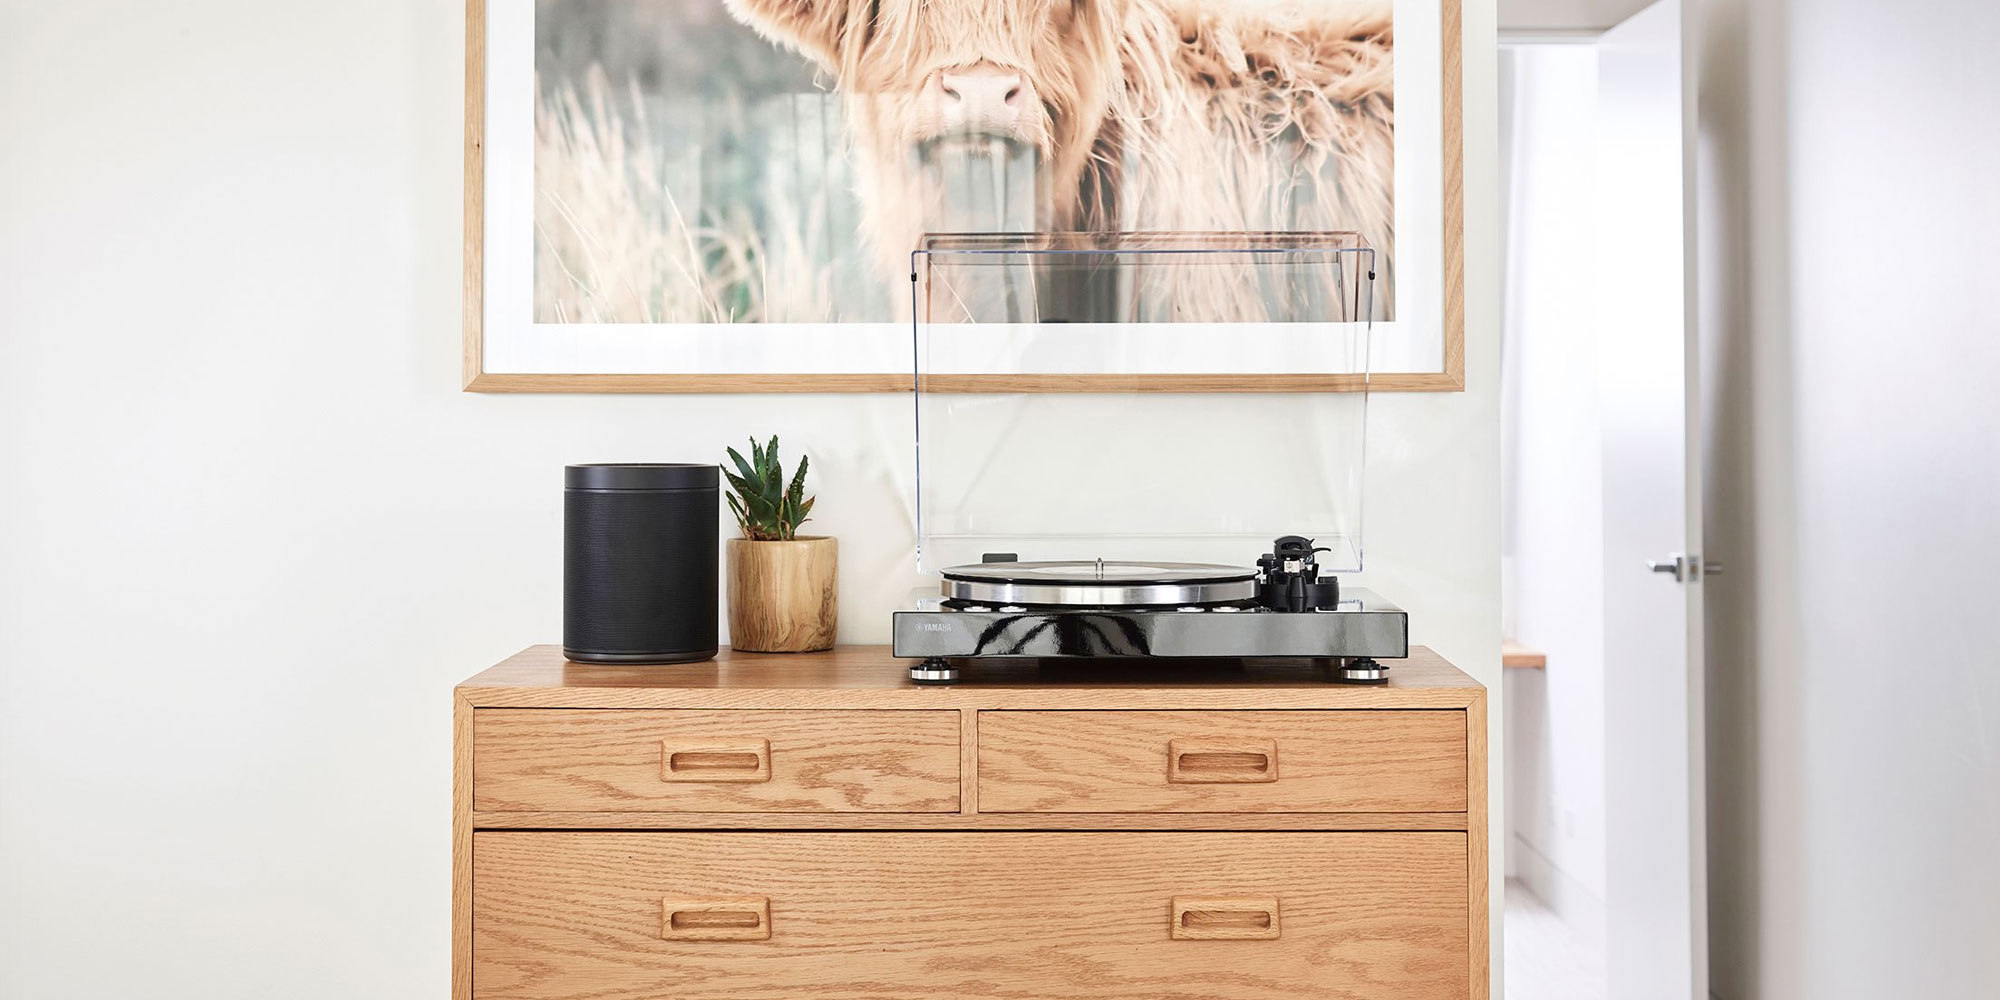 The Yamaha MusicCast Vinyl 500 is an AirPlay-enabled record